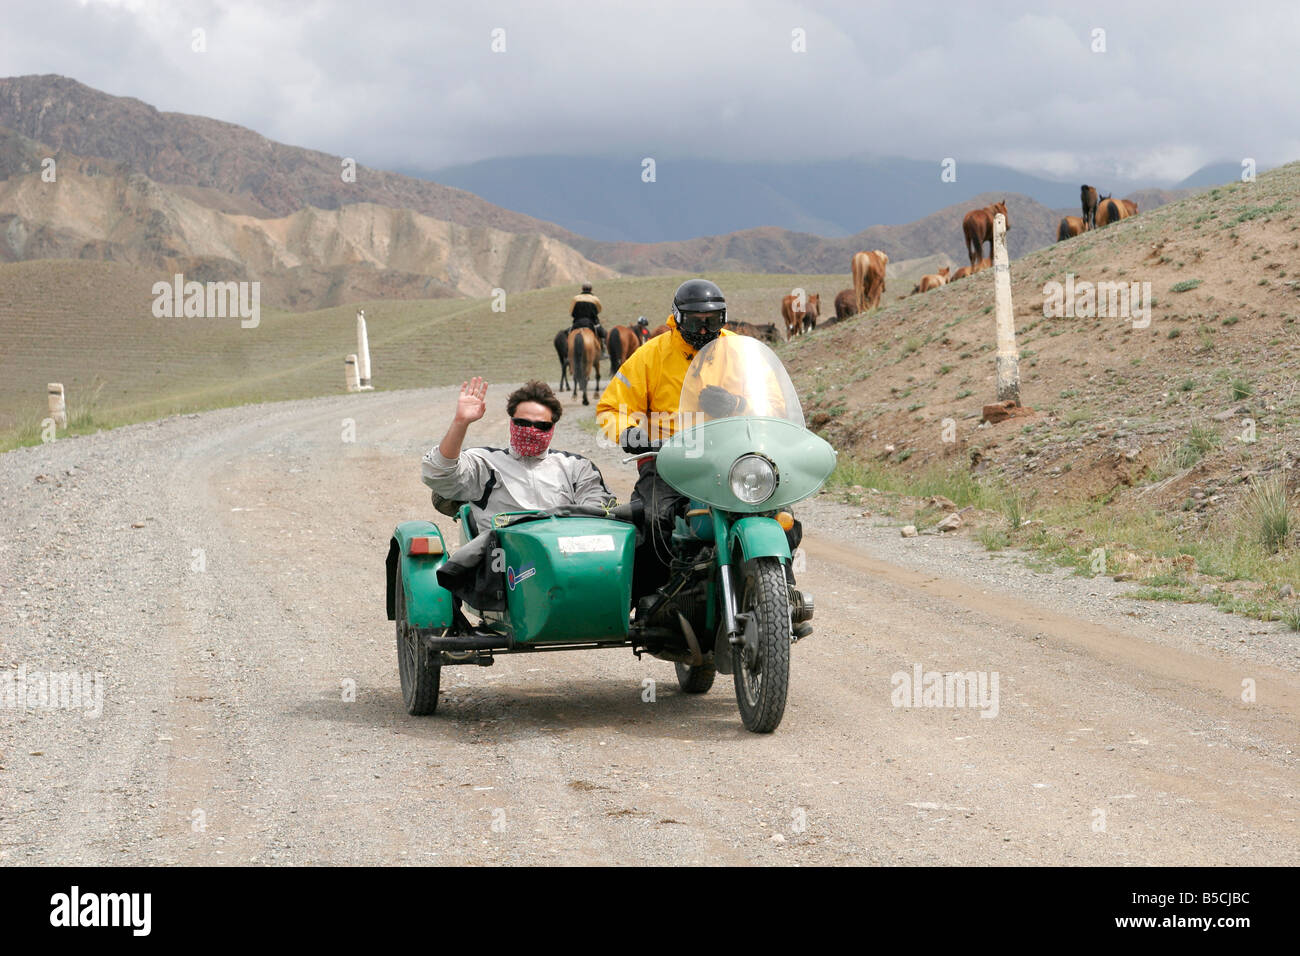 Sidecar Outfit Stock Photos Images Alamy Tt2011 Sidecars Tourists Traveling On Motorcycle With Kyrgyzstan Central Asia Image